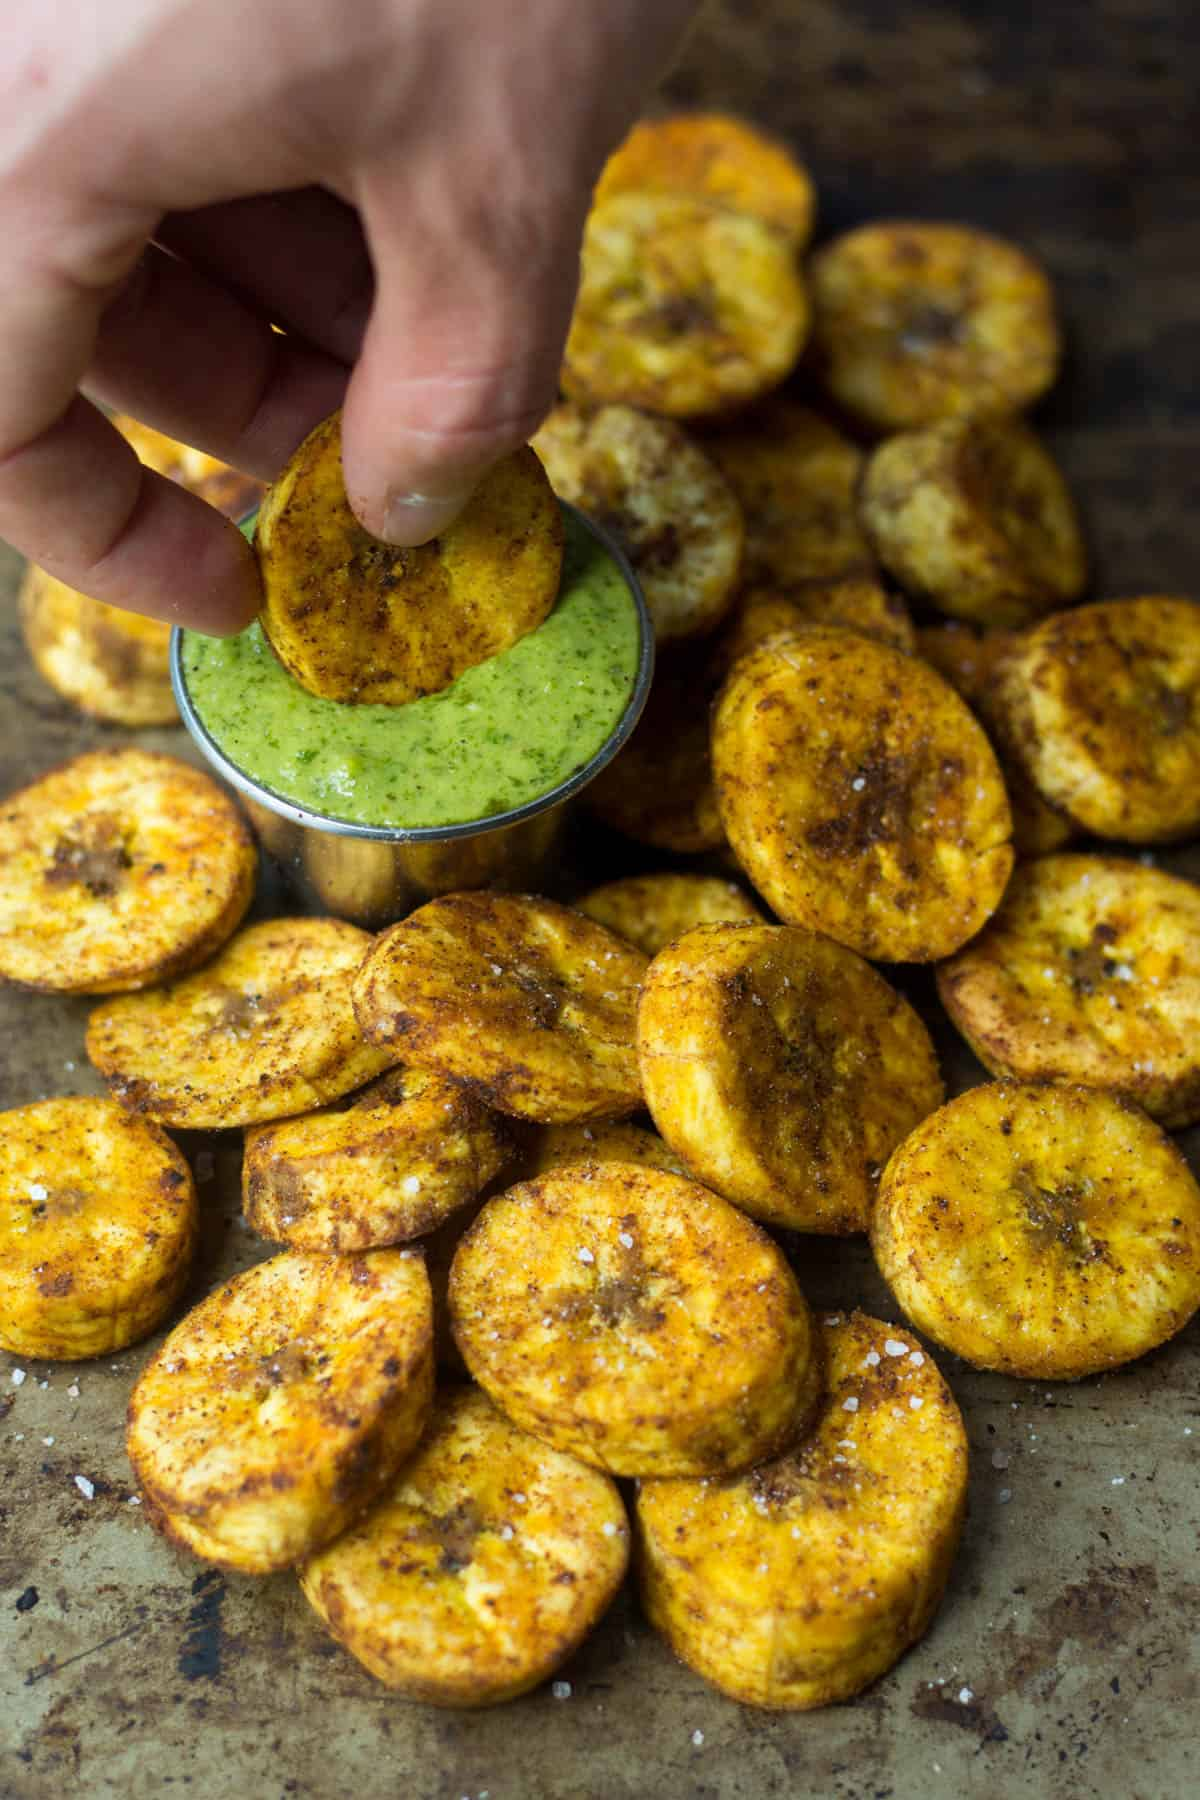 A great carb source, these Sweet & Spicy Baked Plantains are an easy side for breakfast or dinner and are paleo, vegan, and Whole30 approved! - Eat the Gains